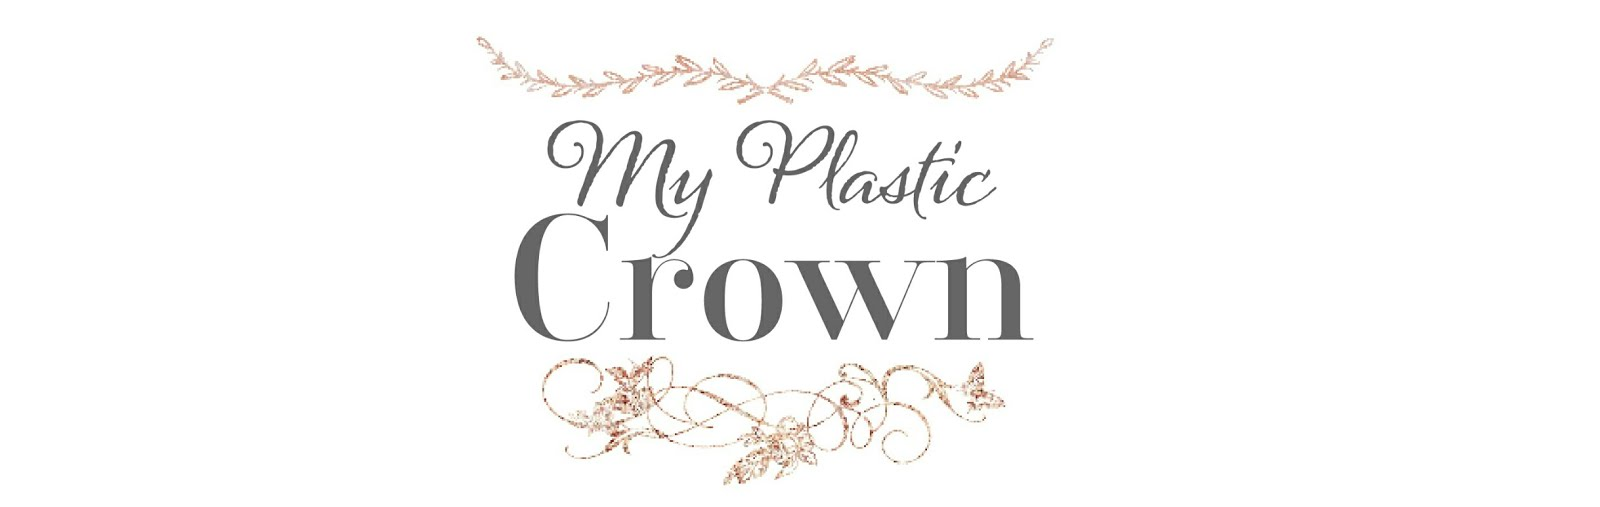 My Plastic Crown